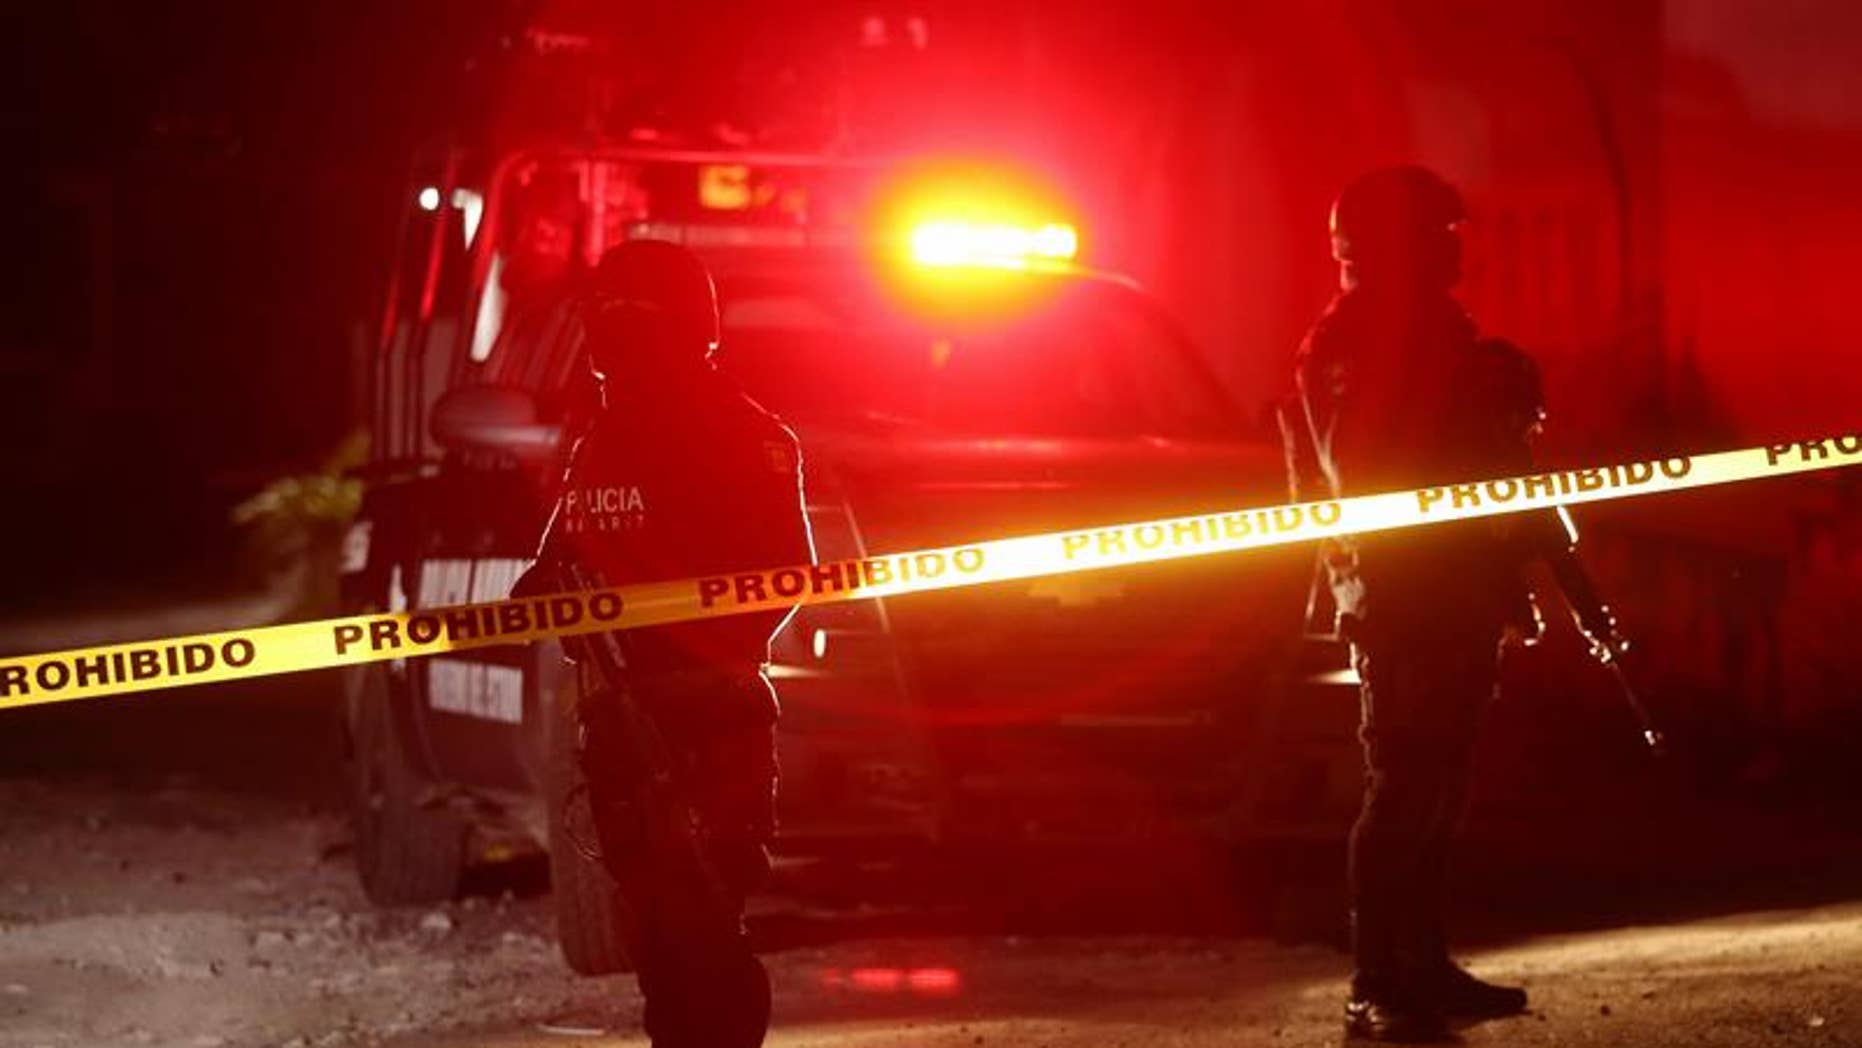 State and federal police on Feb. 10, 2017, guard a crime scene in Tepic, Nayarit where Juan Francisco Padron Sanchez, a suspected regional leader of the Beltran Leyva drug cartel, was killed in a shootout with federal forces.